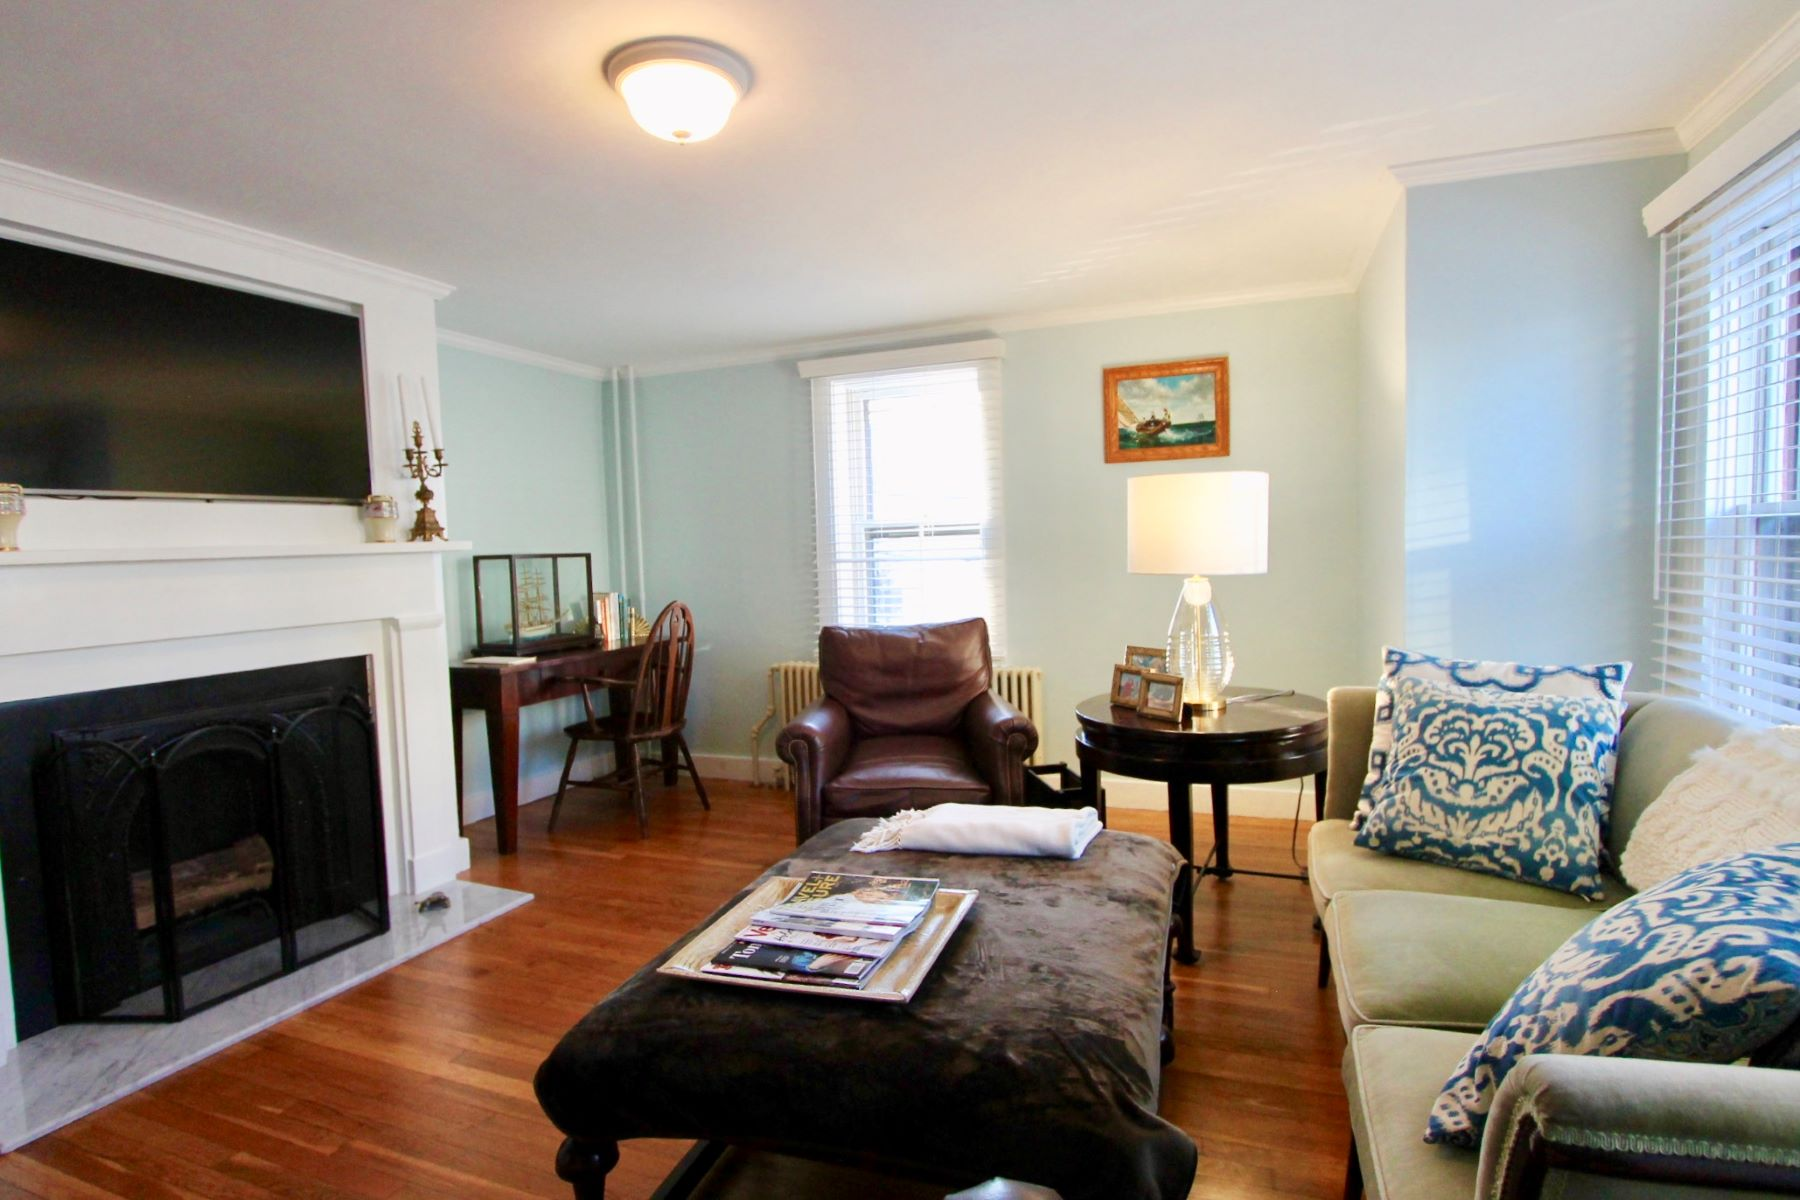 Additional photo for property listing at The Marmaduke Brown House 2 High Street 2 Newport, Rhode Island 02840 United States